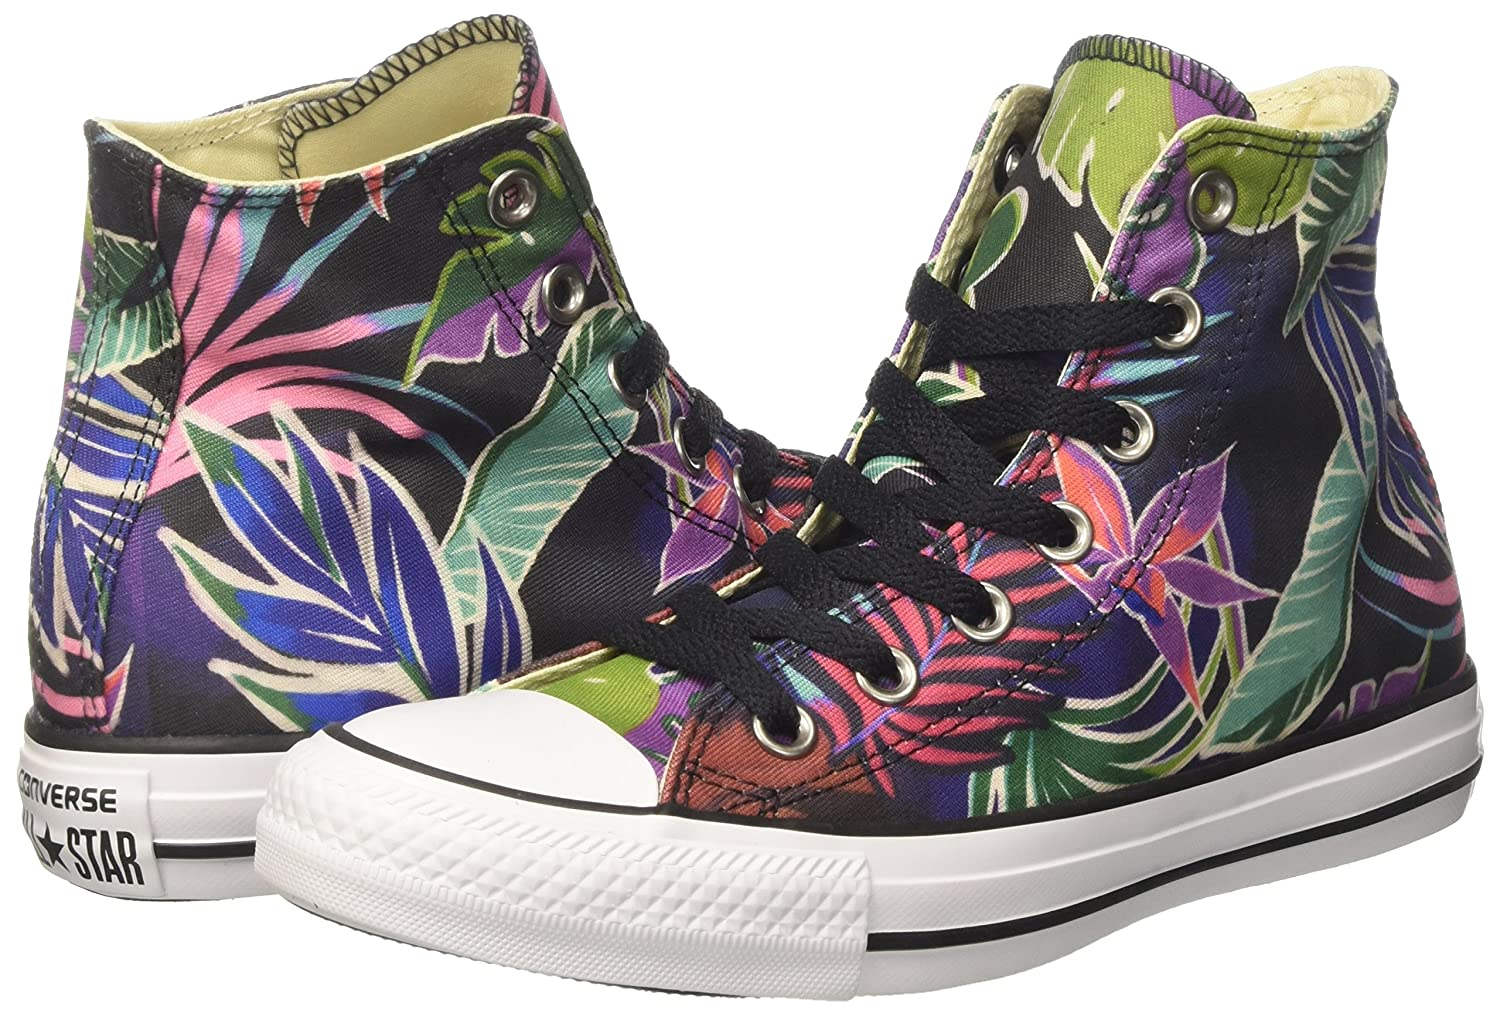 f585a4b3a43f Converse Women s CTAS Lace-Up Hi-Top Sneakers  Buy Online at Low Prices in  India - Amazon.in